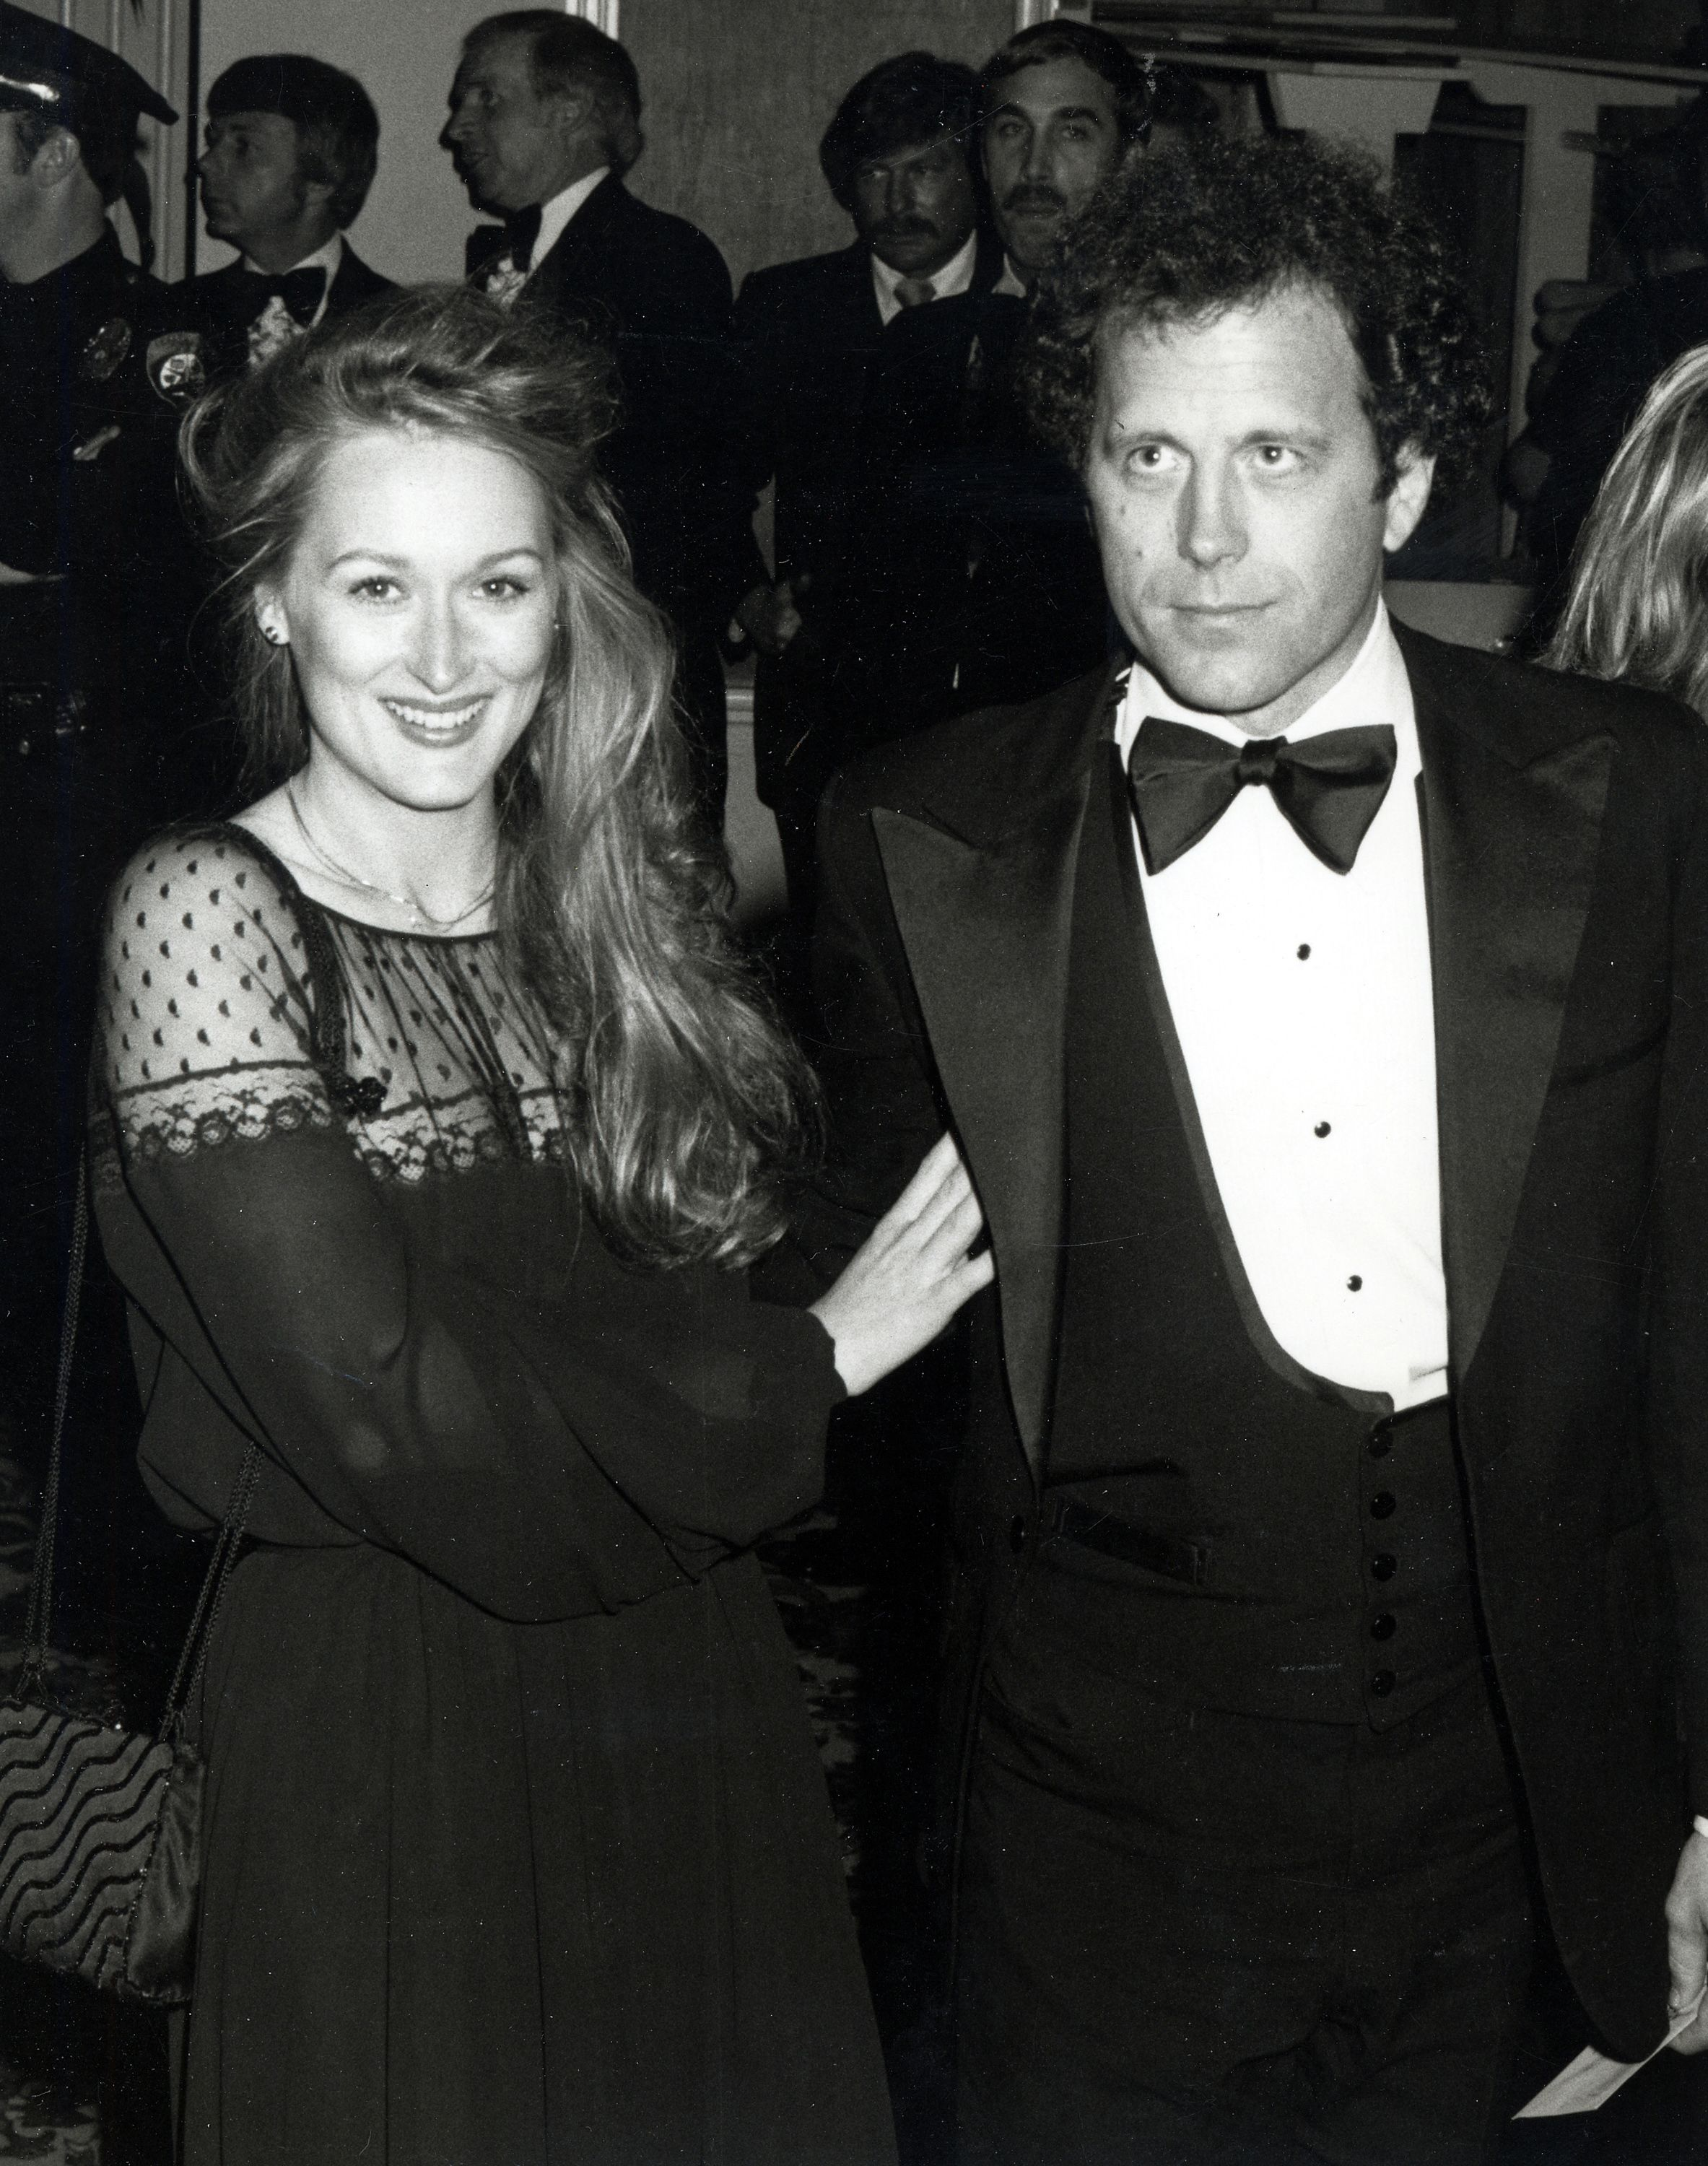 Meryl Streep and Don Gummer at the 51st Annual Academy Awards in 1979 in Los Angeles | Source: Getty Images